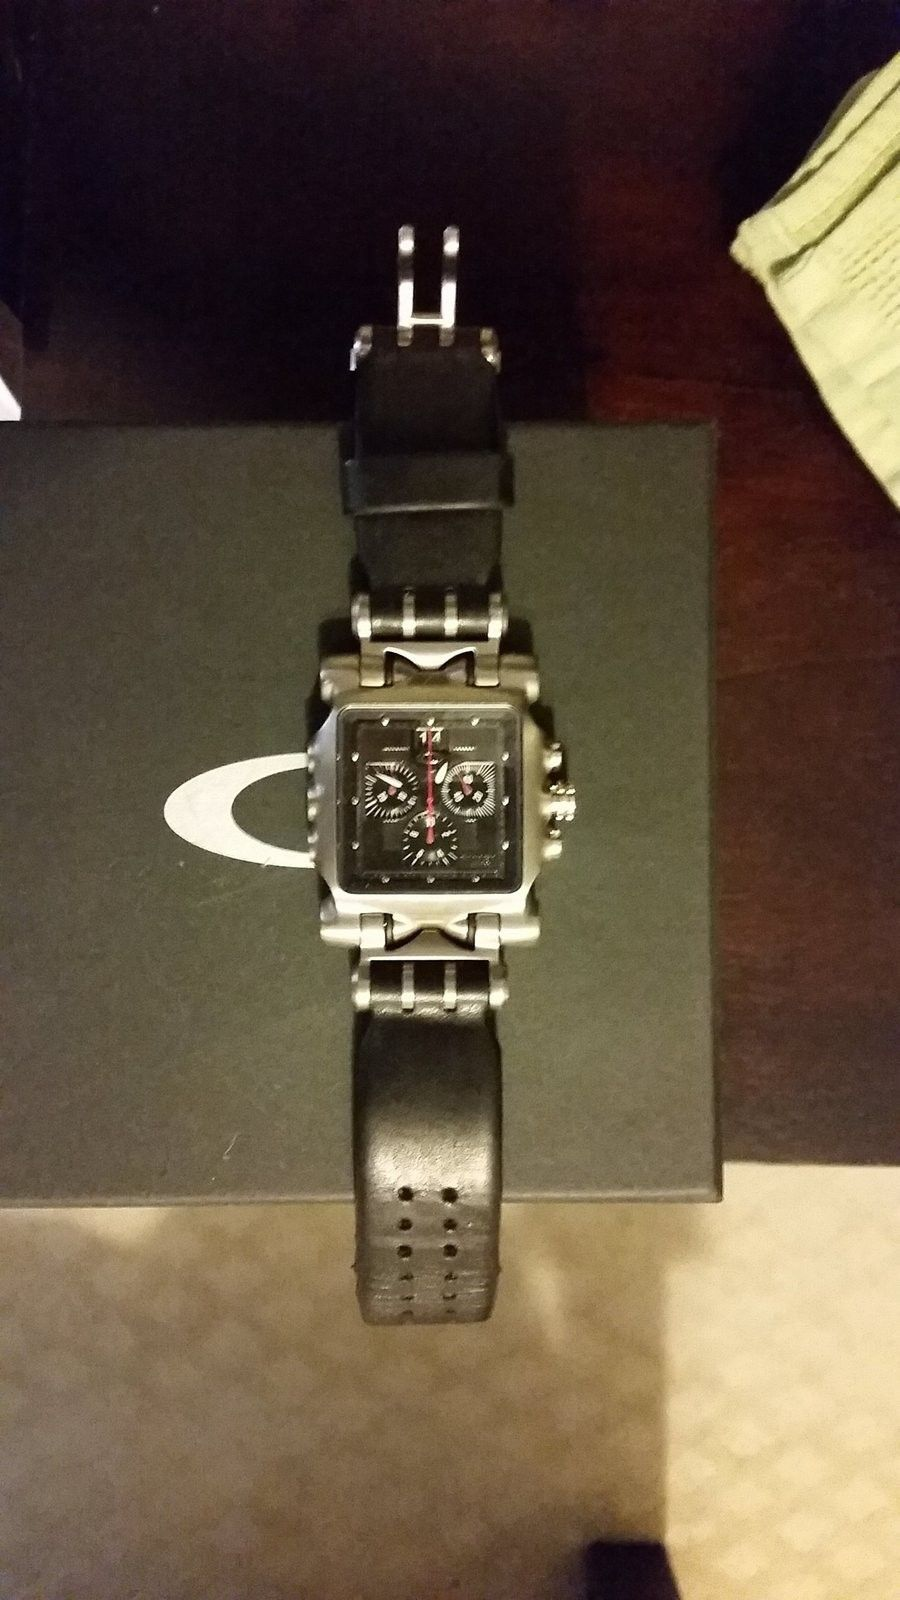 Fs Minute Machine Ti Face /w leather bands - uploadfromtaptalk1421262275655.jpg